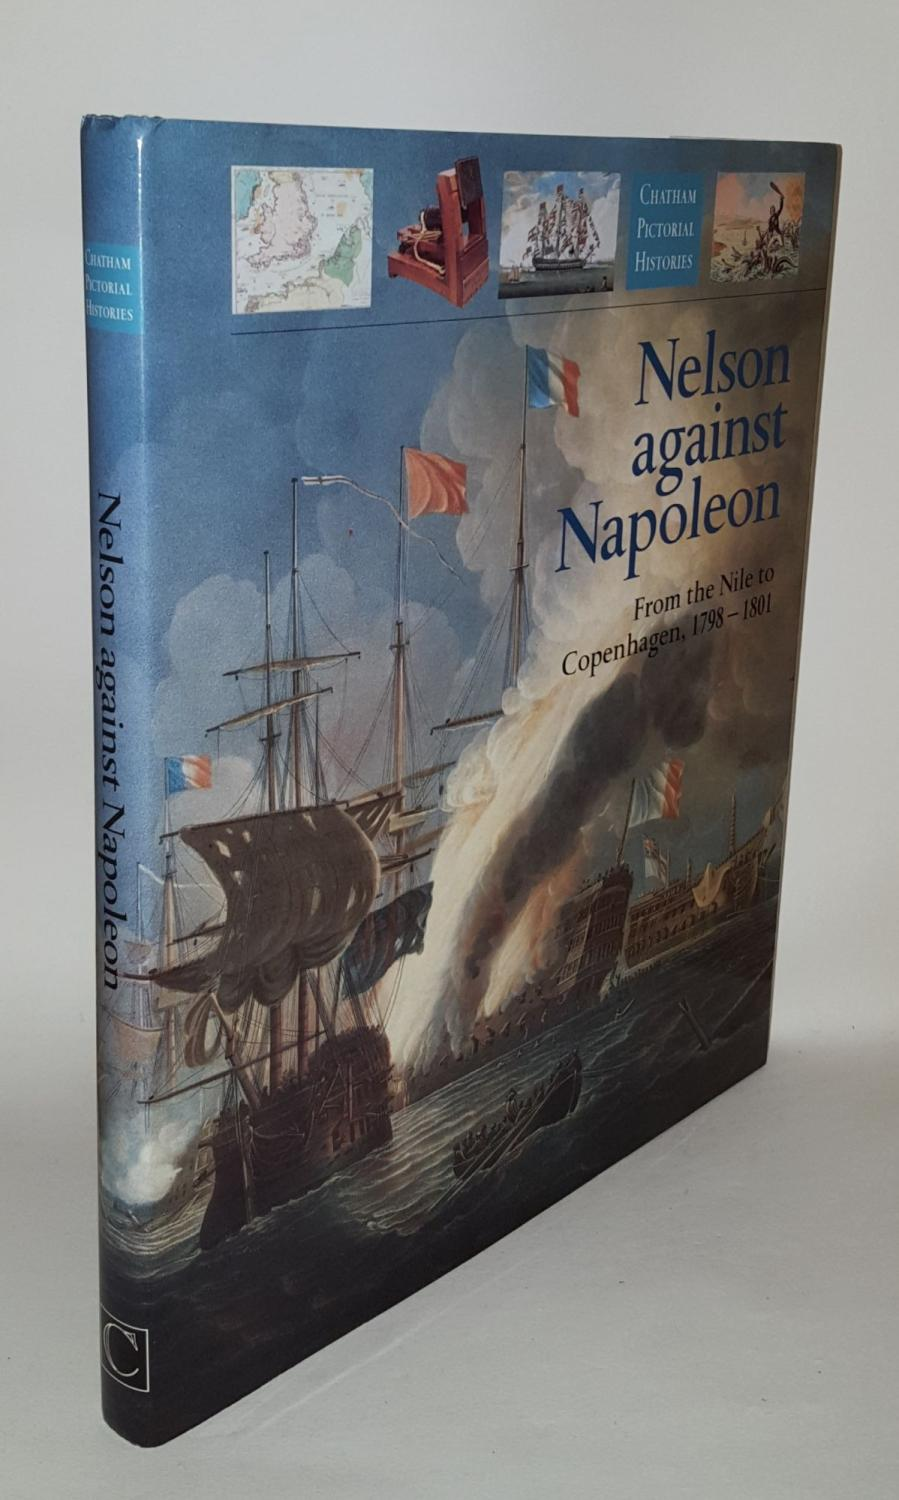 NELSON AGAINST NAPOLEON From the Nile to: GARDINER Robert